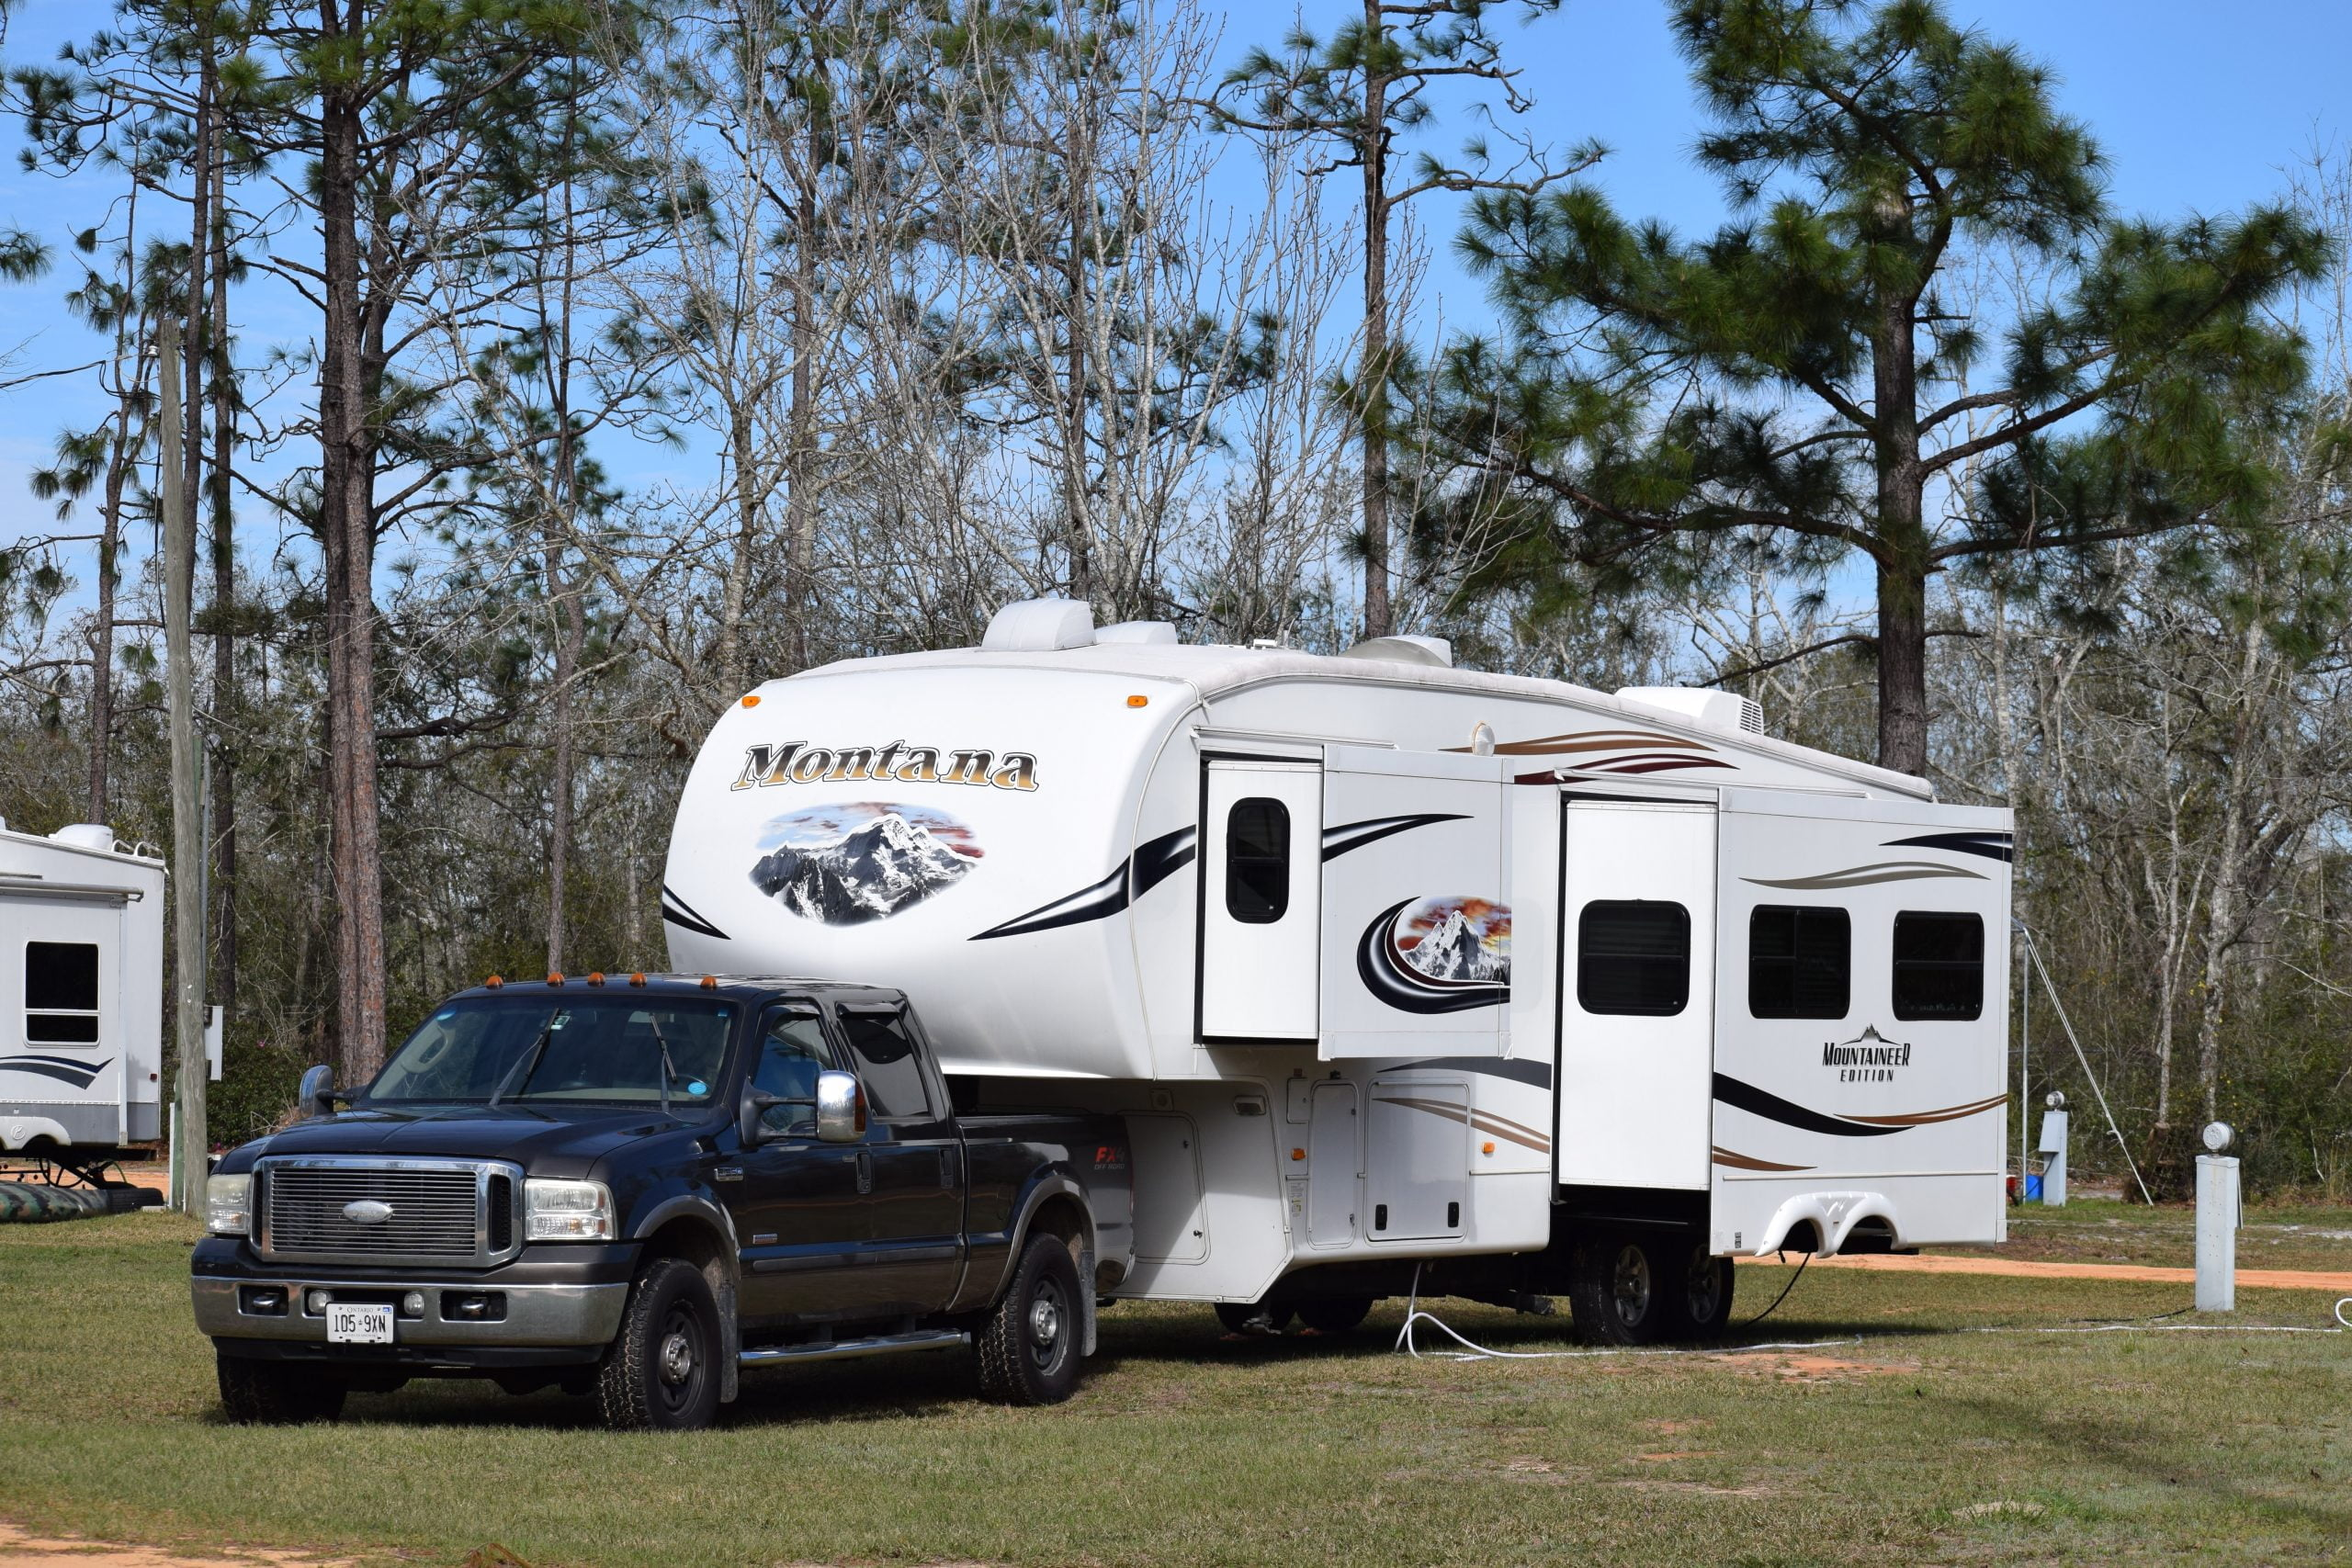 Has COVID-19 Altered Your Winter RV Plans?